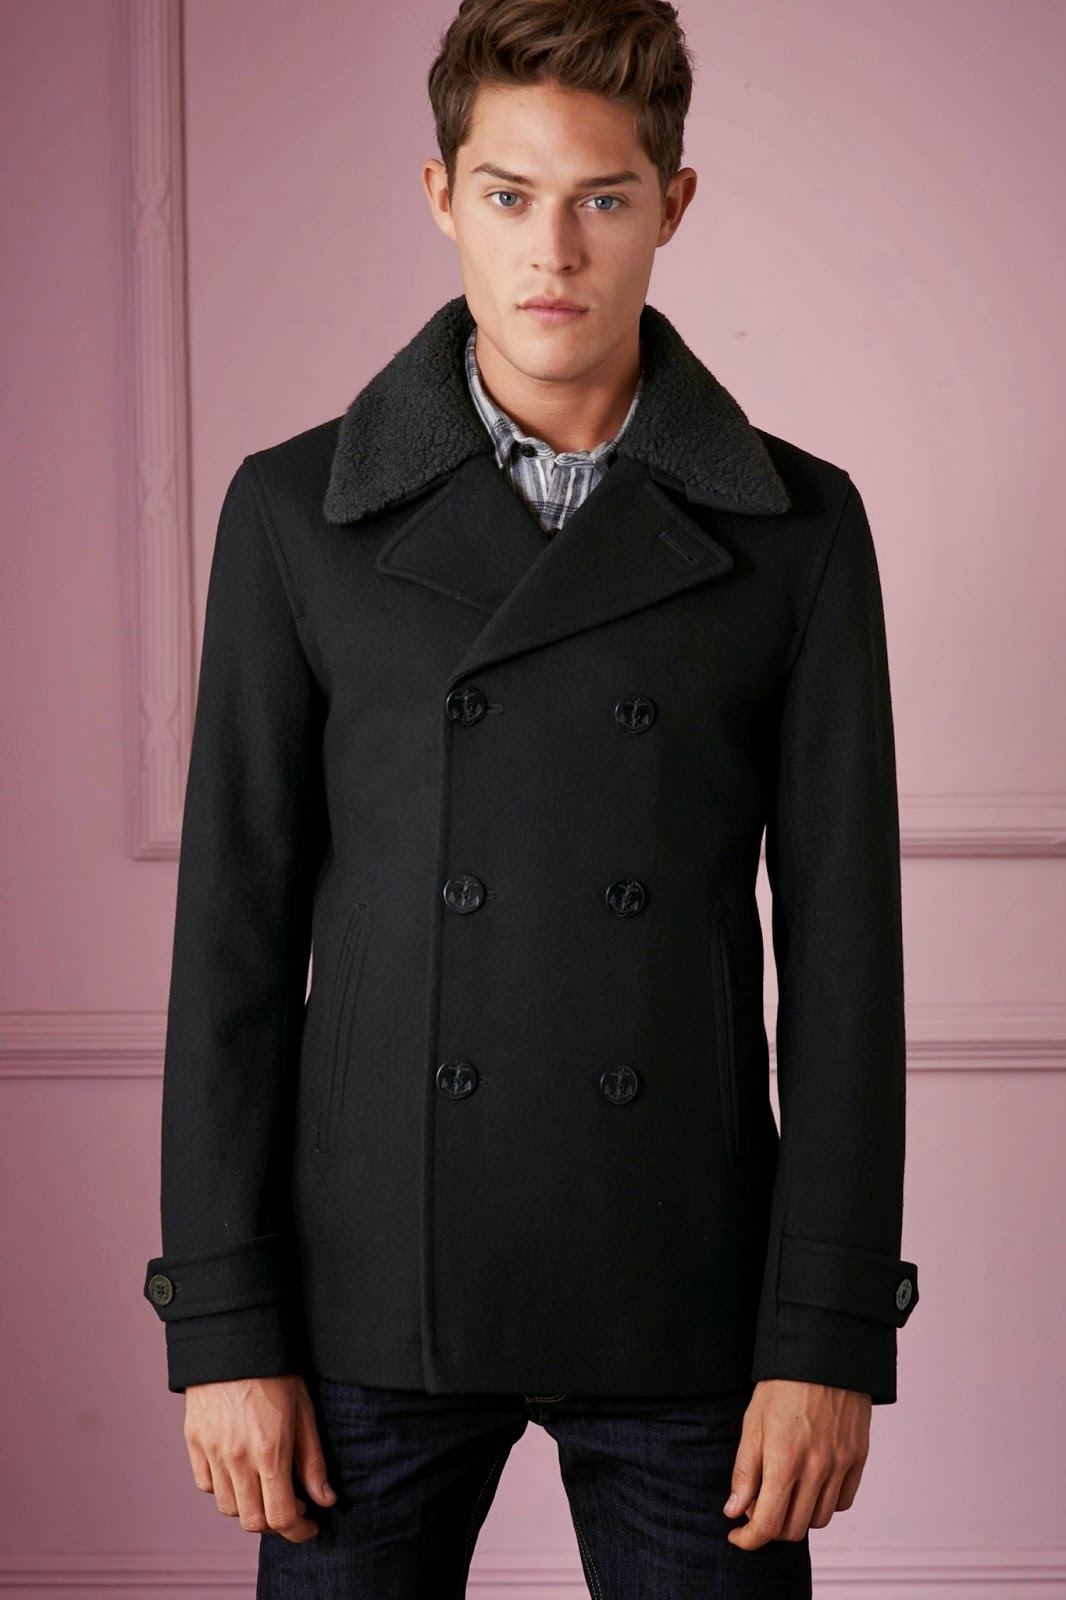 Five Cool Coats by Next | That Dapper Chap